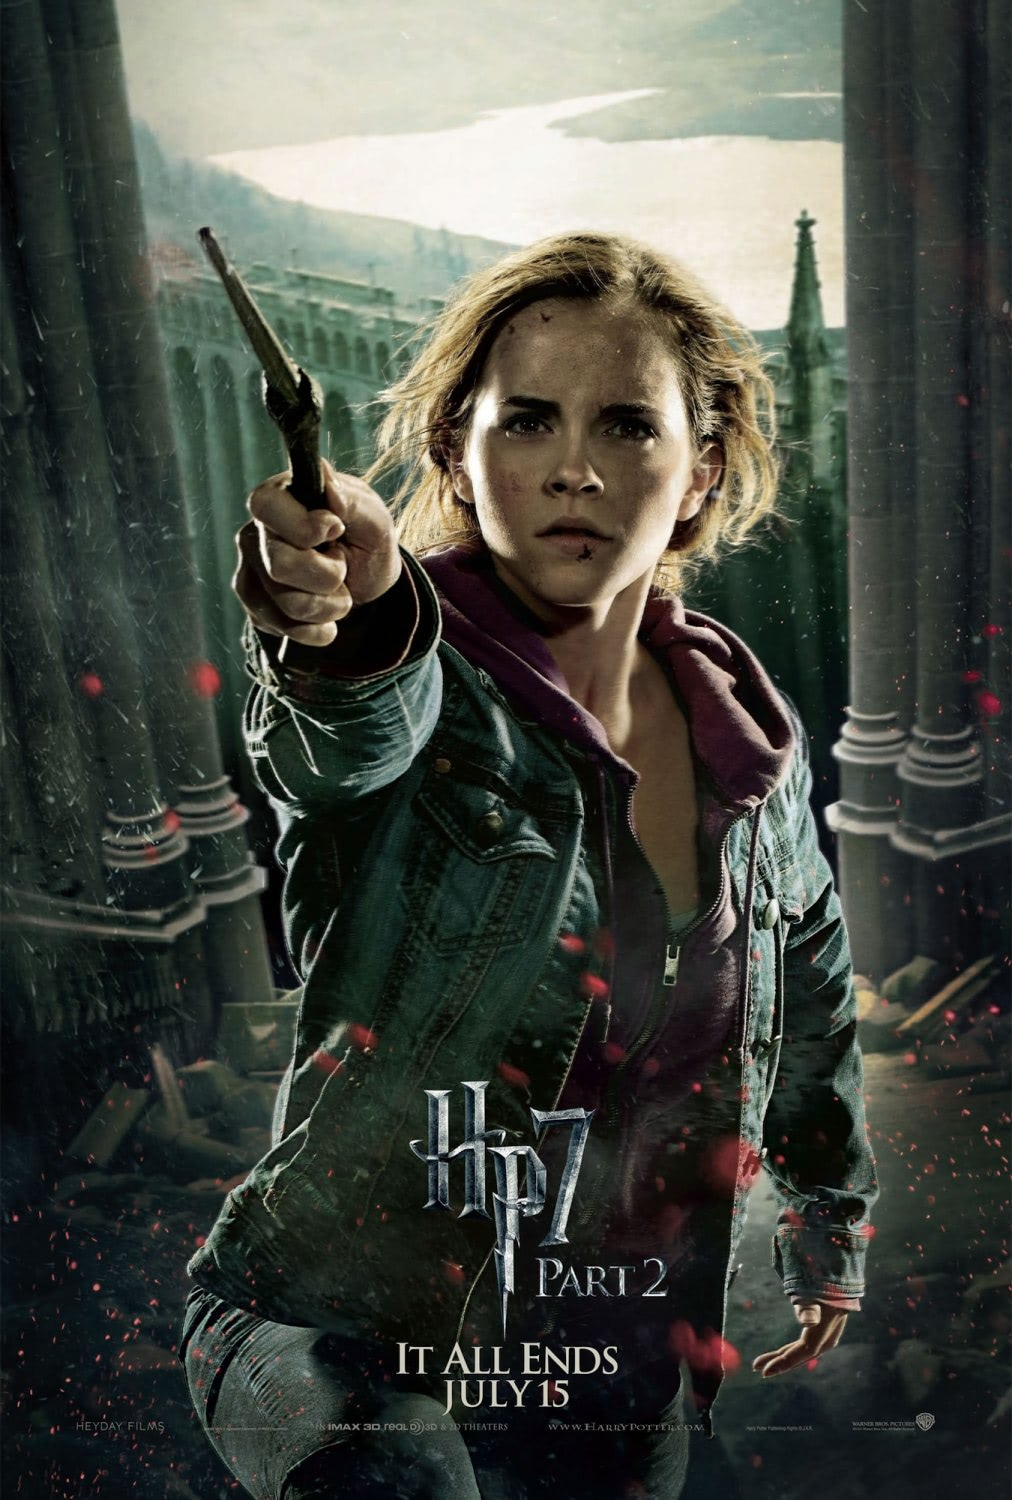 'Deathly Hallows: Part 2' Hermione poster